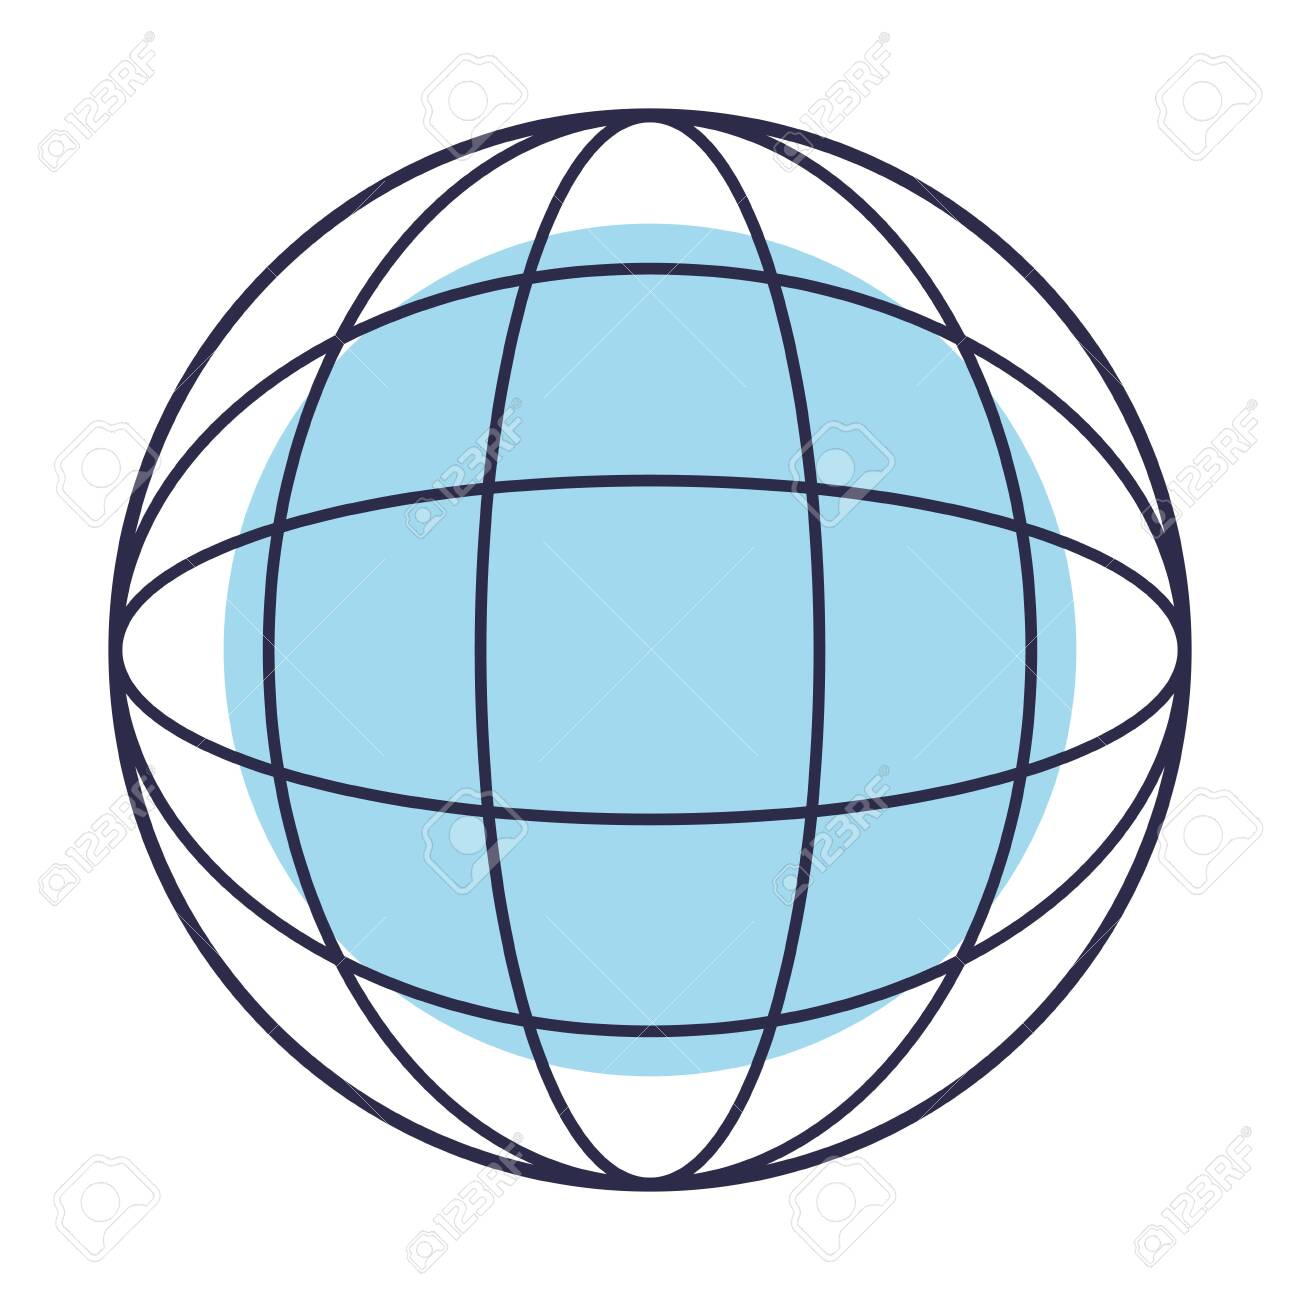 abstract figure of a globe base on lines and a core vector illustration graphic design - 125464428